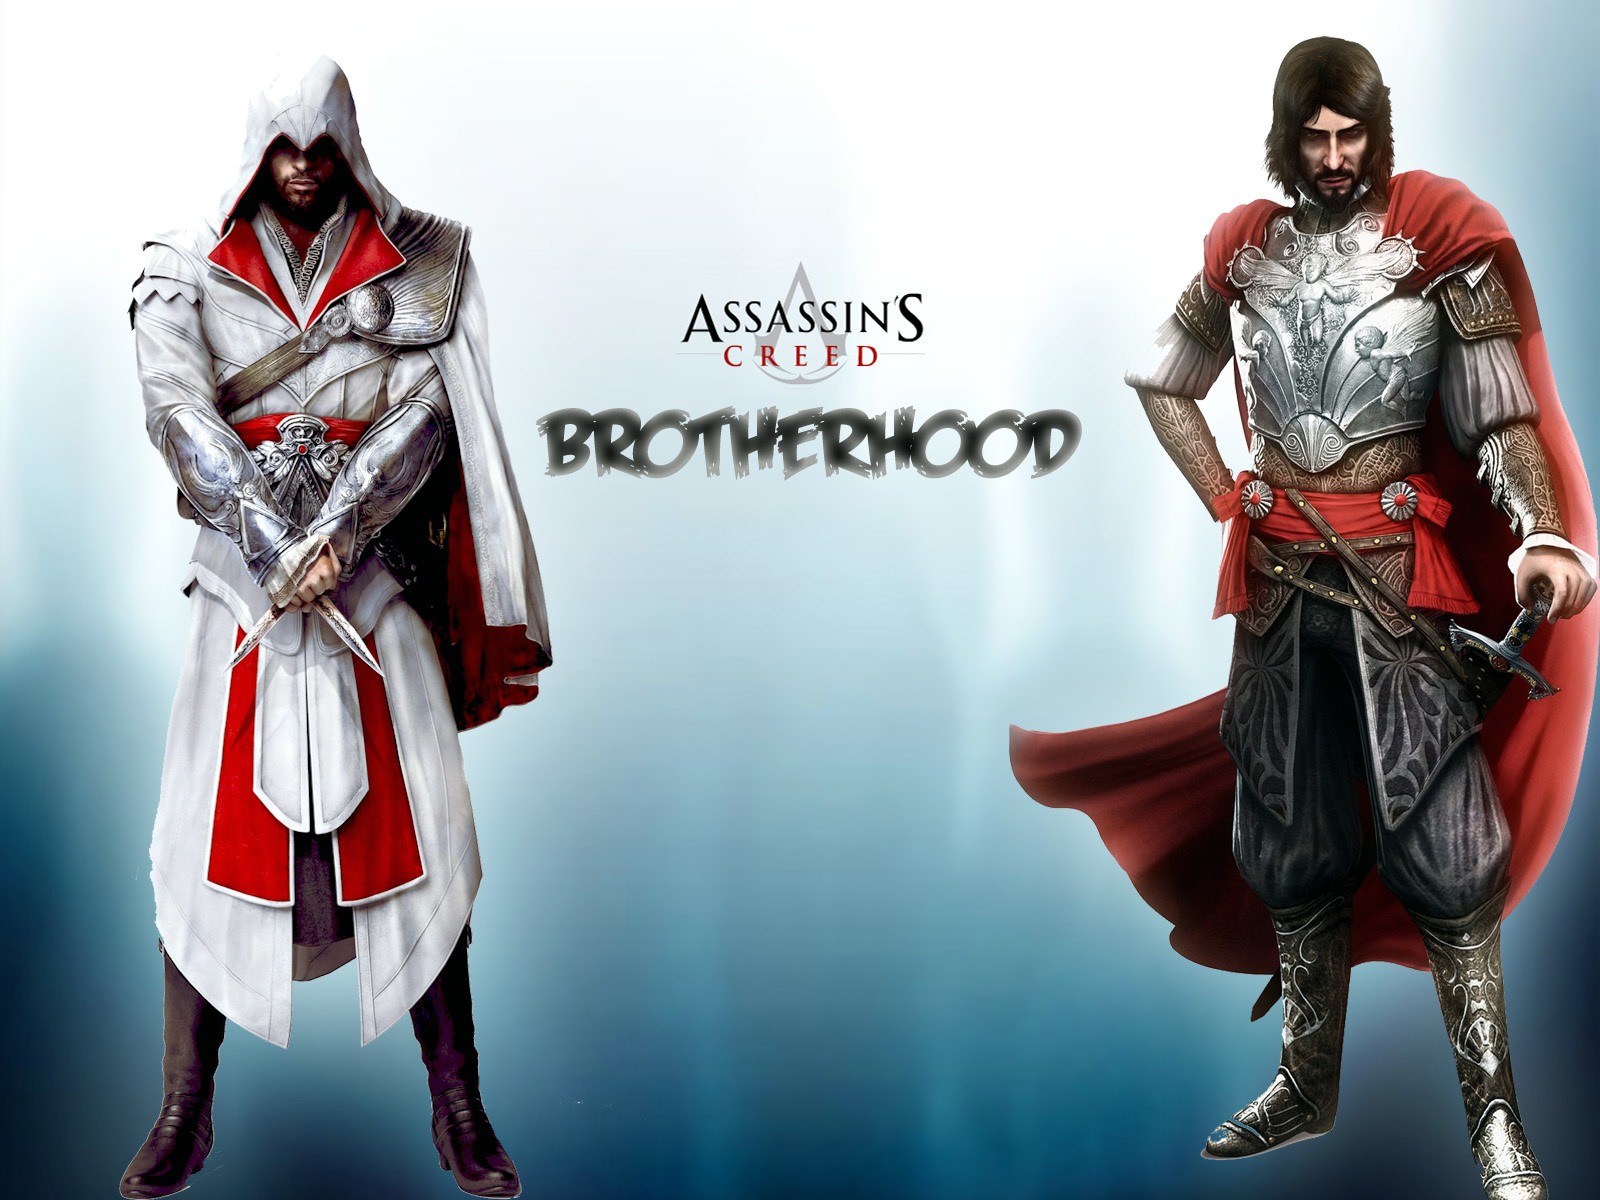 Assassin creed brotherhood by HD Wallpaper